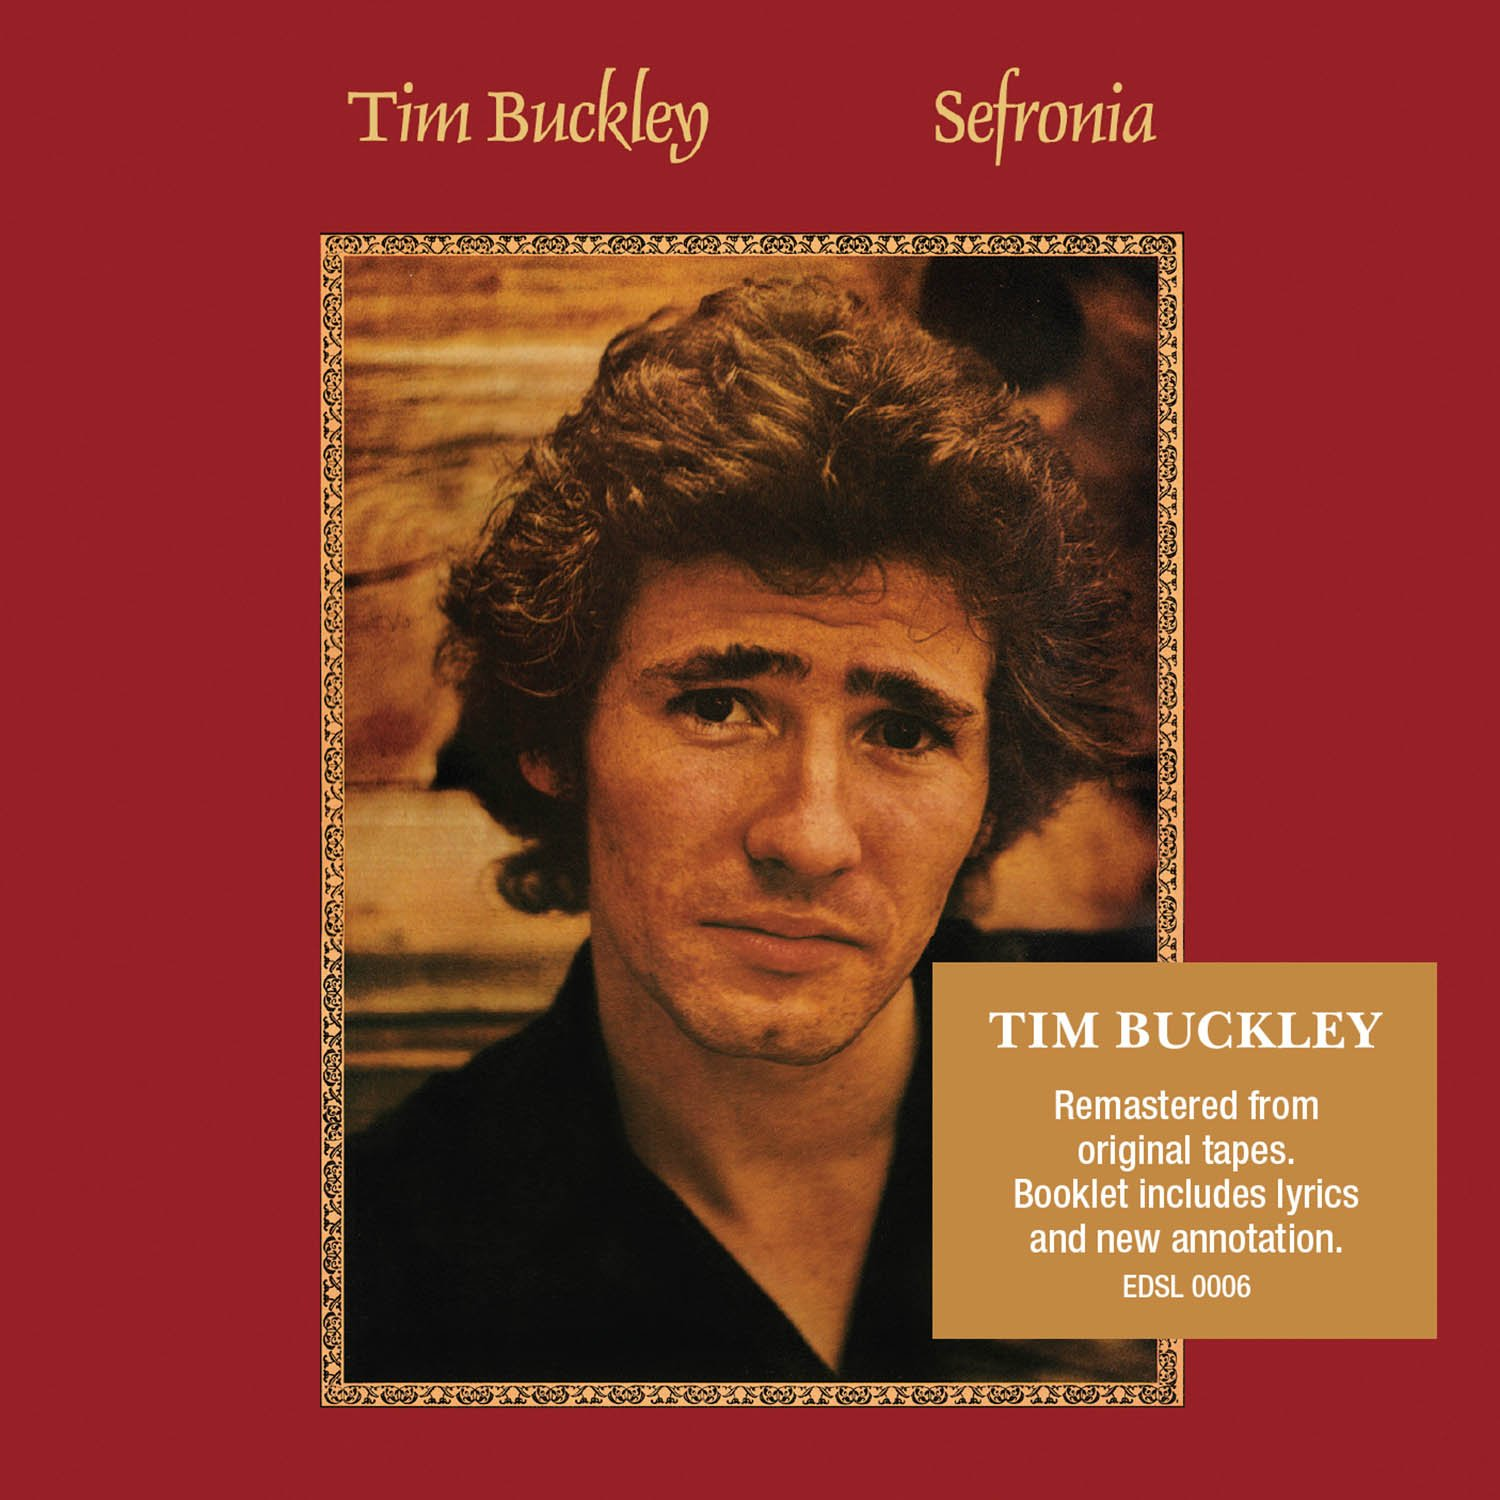 Tim Buckley - Sefronia / Tim Buckley - Amazon.com Music